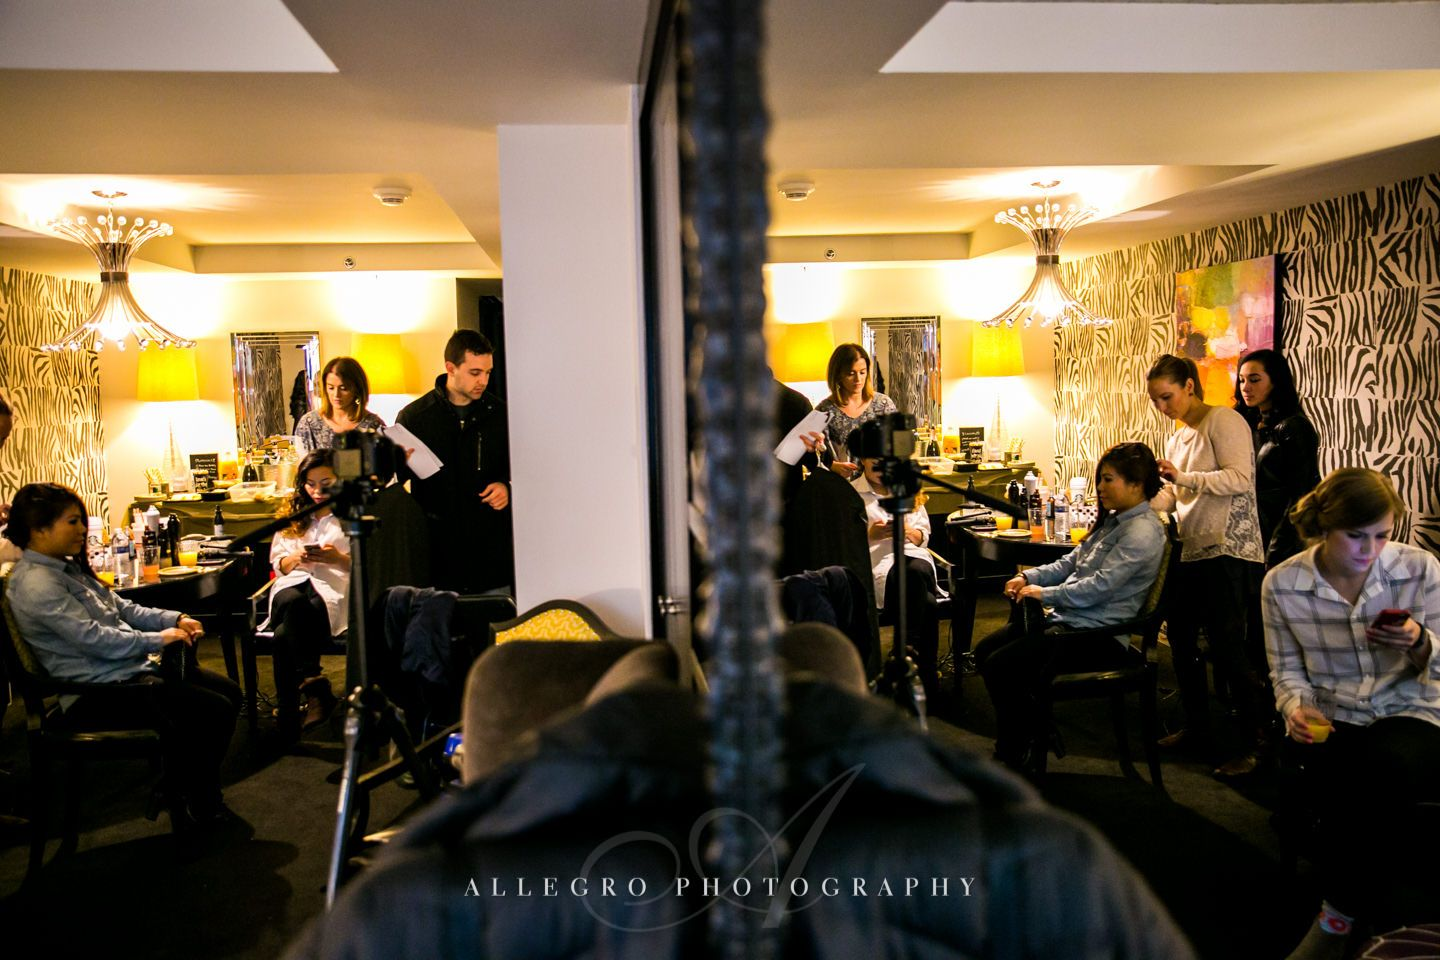 getting ready for the wedding day at hotel nine zero  -photo by allegro photography